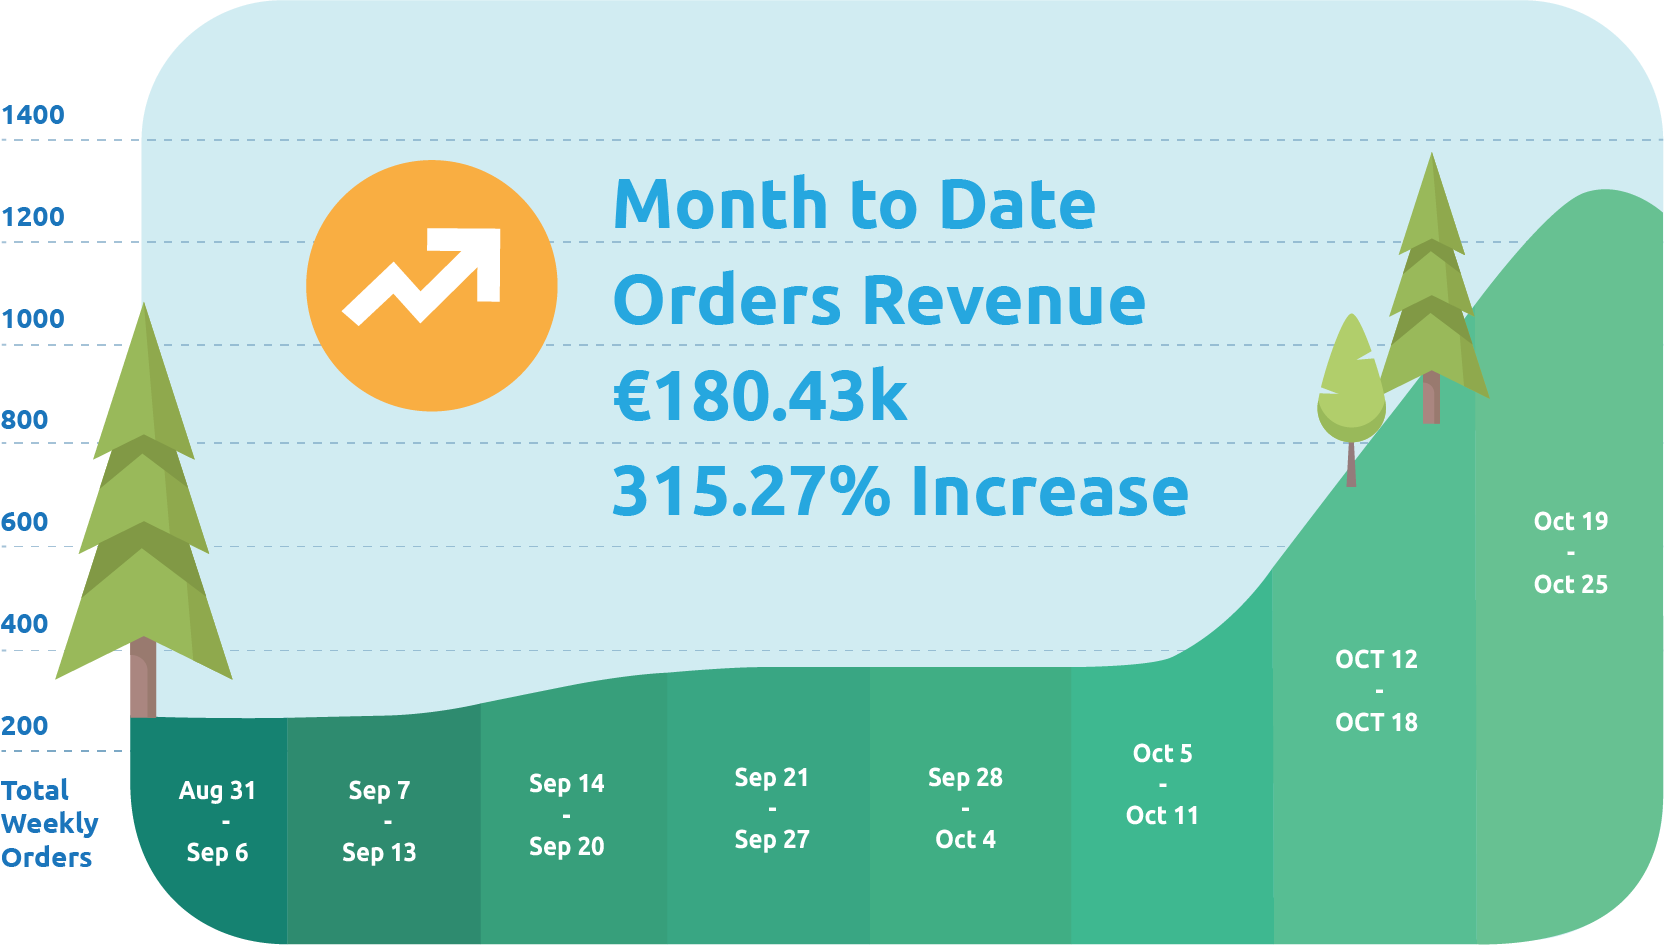 The month to date order revenue increase from August to december 2020 for Bistroo